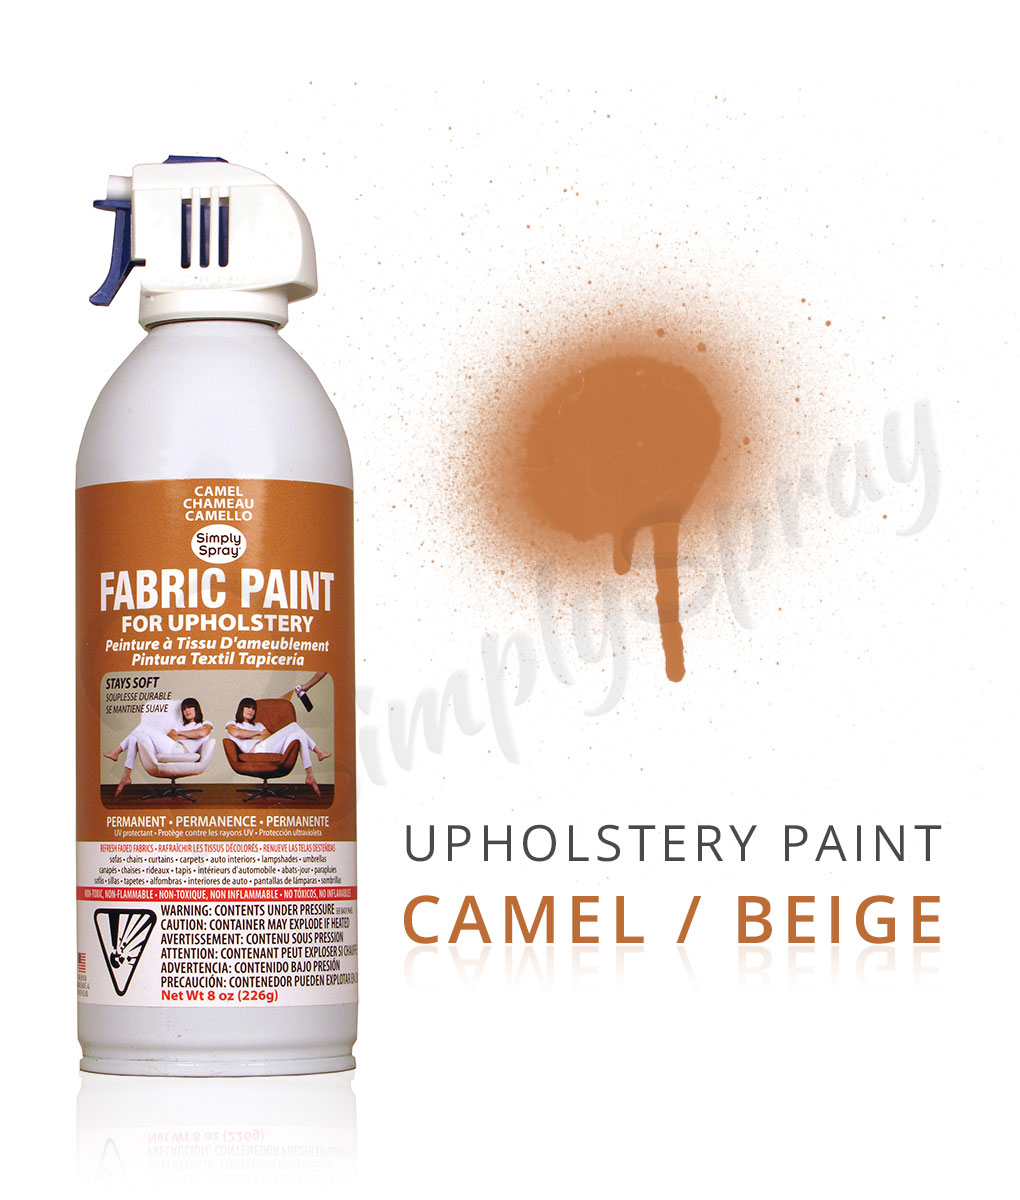 camel beige fabric dye spray paint quick easy effective. Black Bedroom Furniture Sets. Home Design Ideas